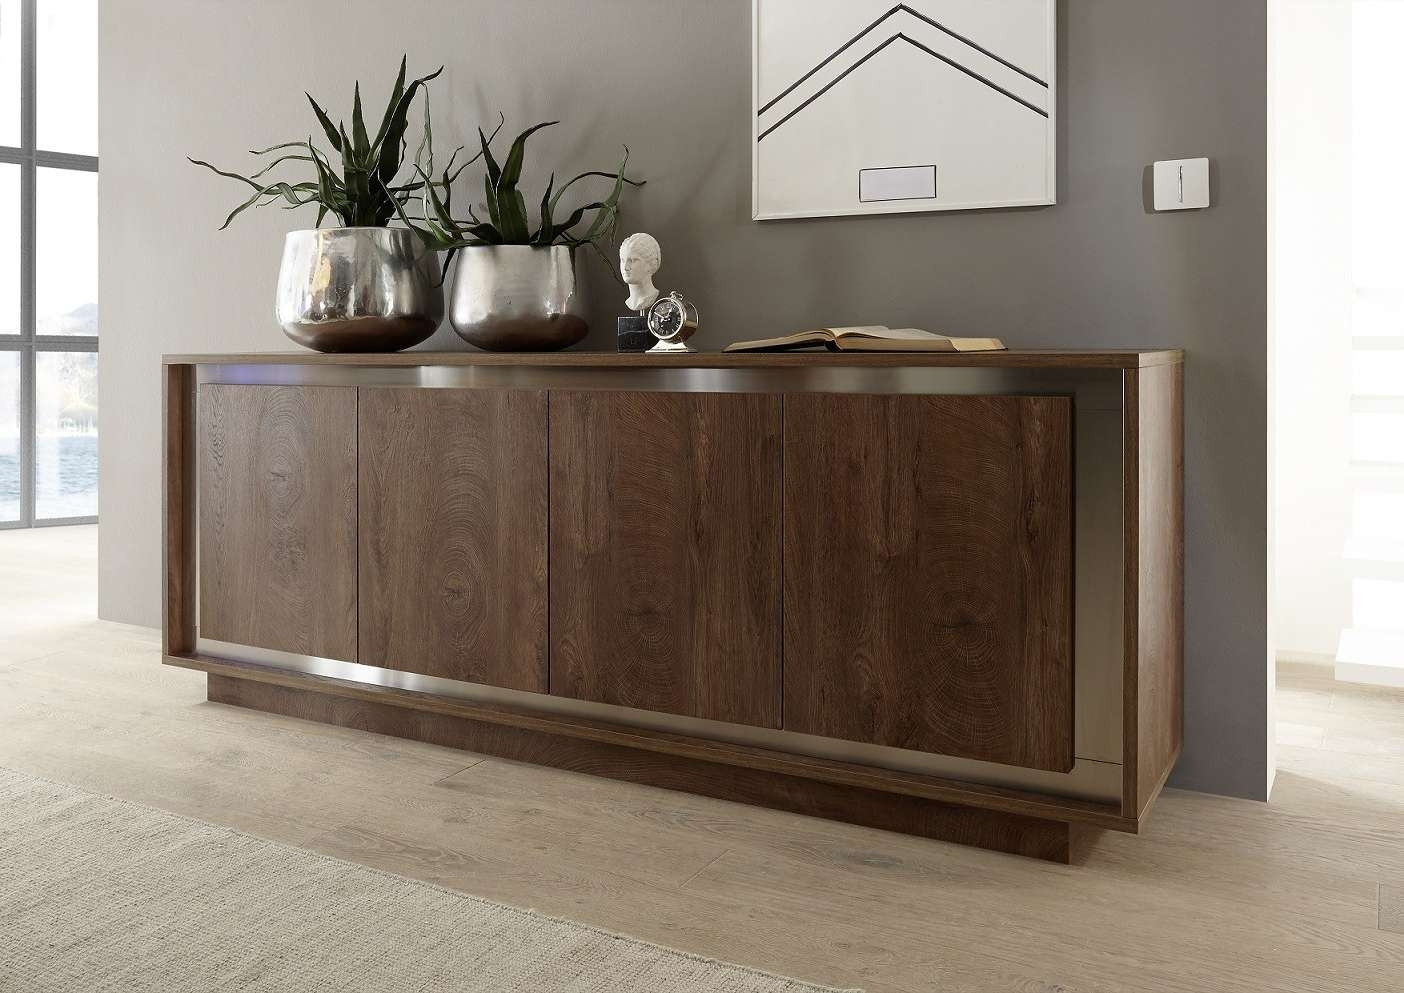 Amber Modern Sideboard In Oak Cognac Finish With Inlays Intended For Bespoke Sideboards (View 1 of 20)